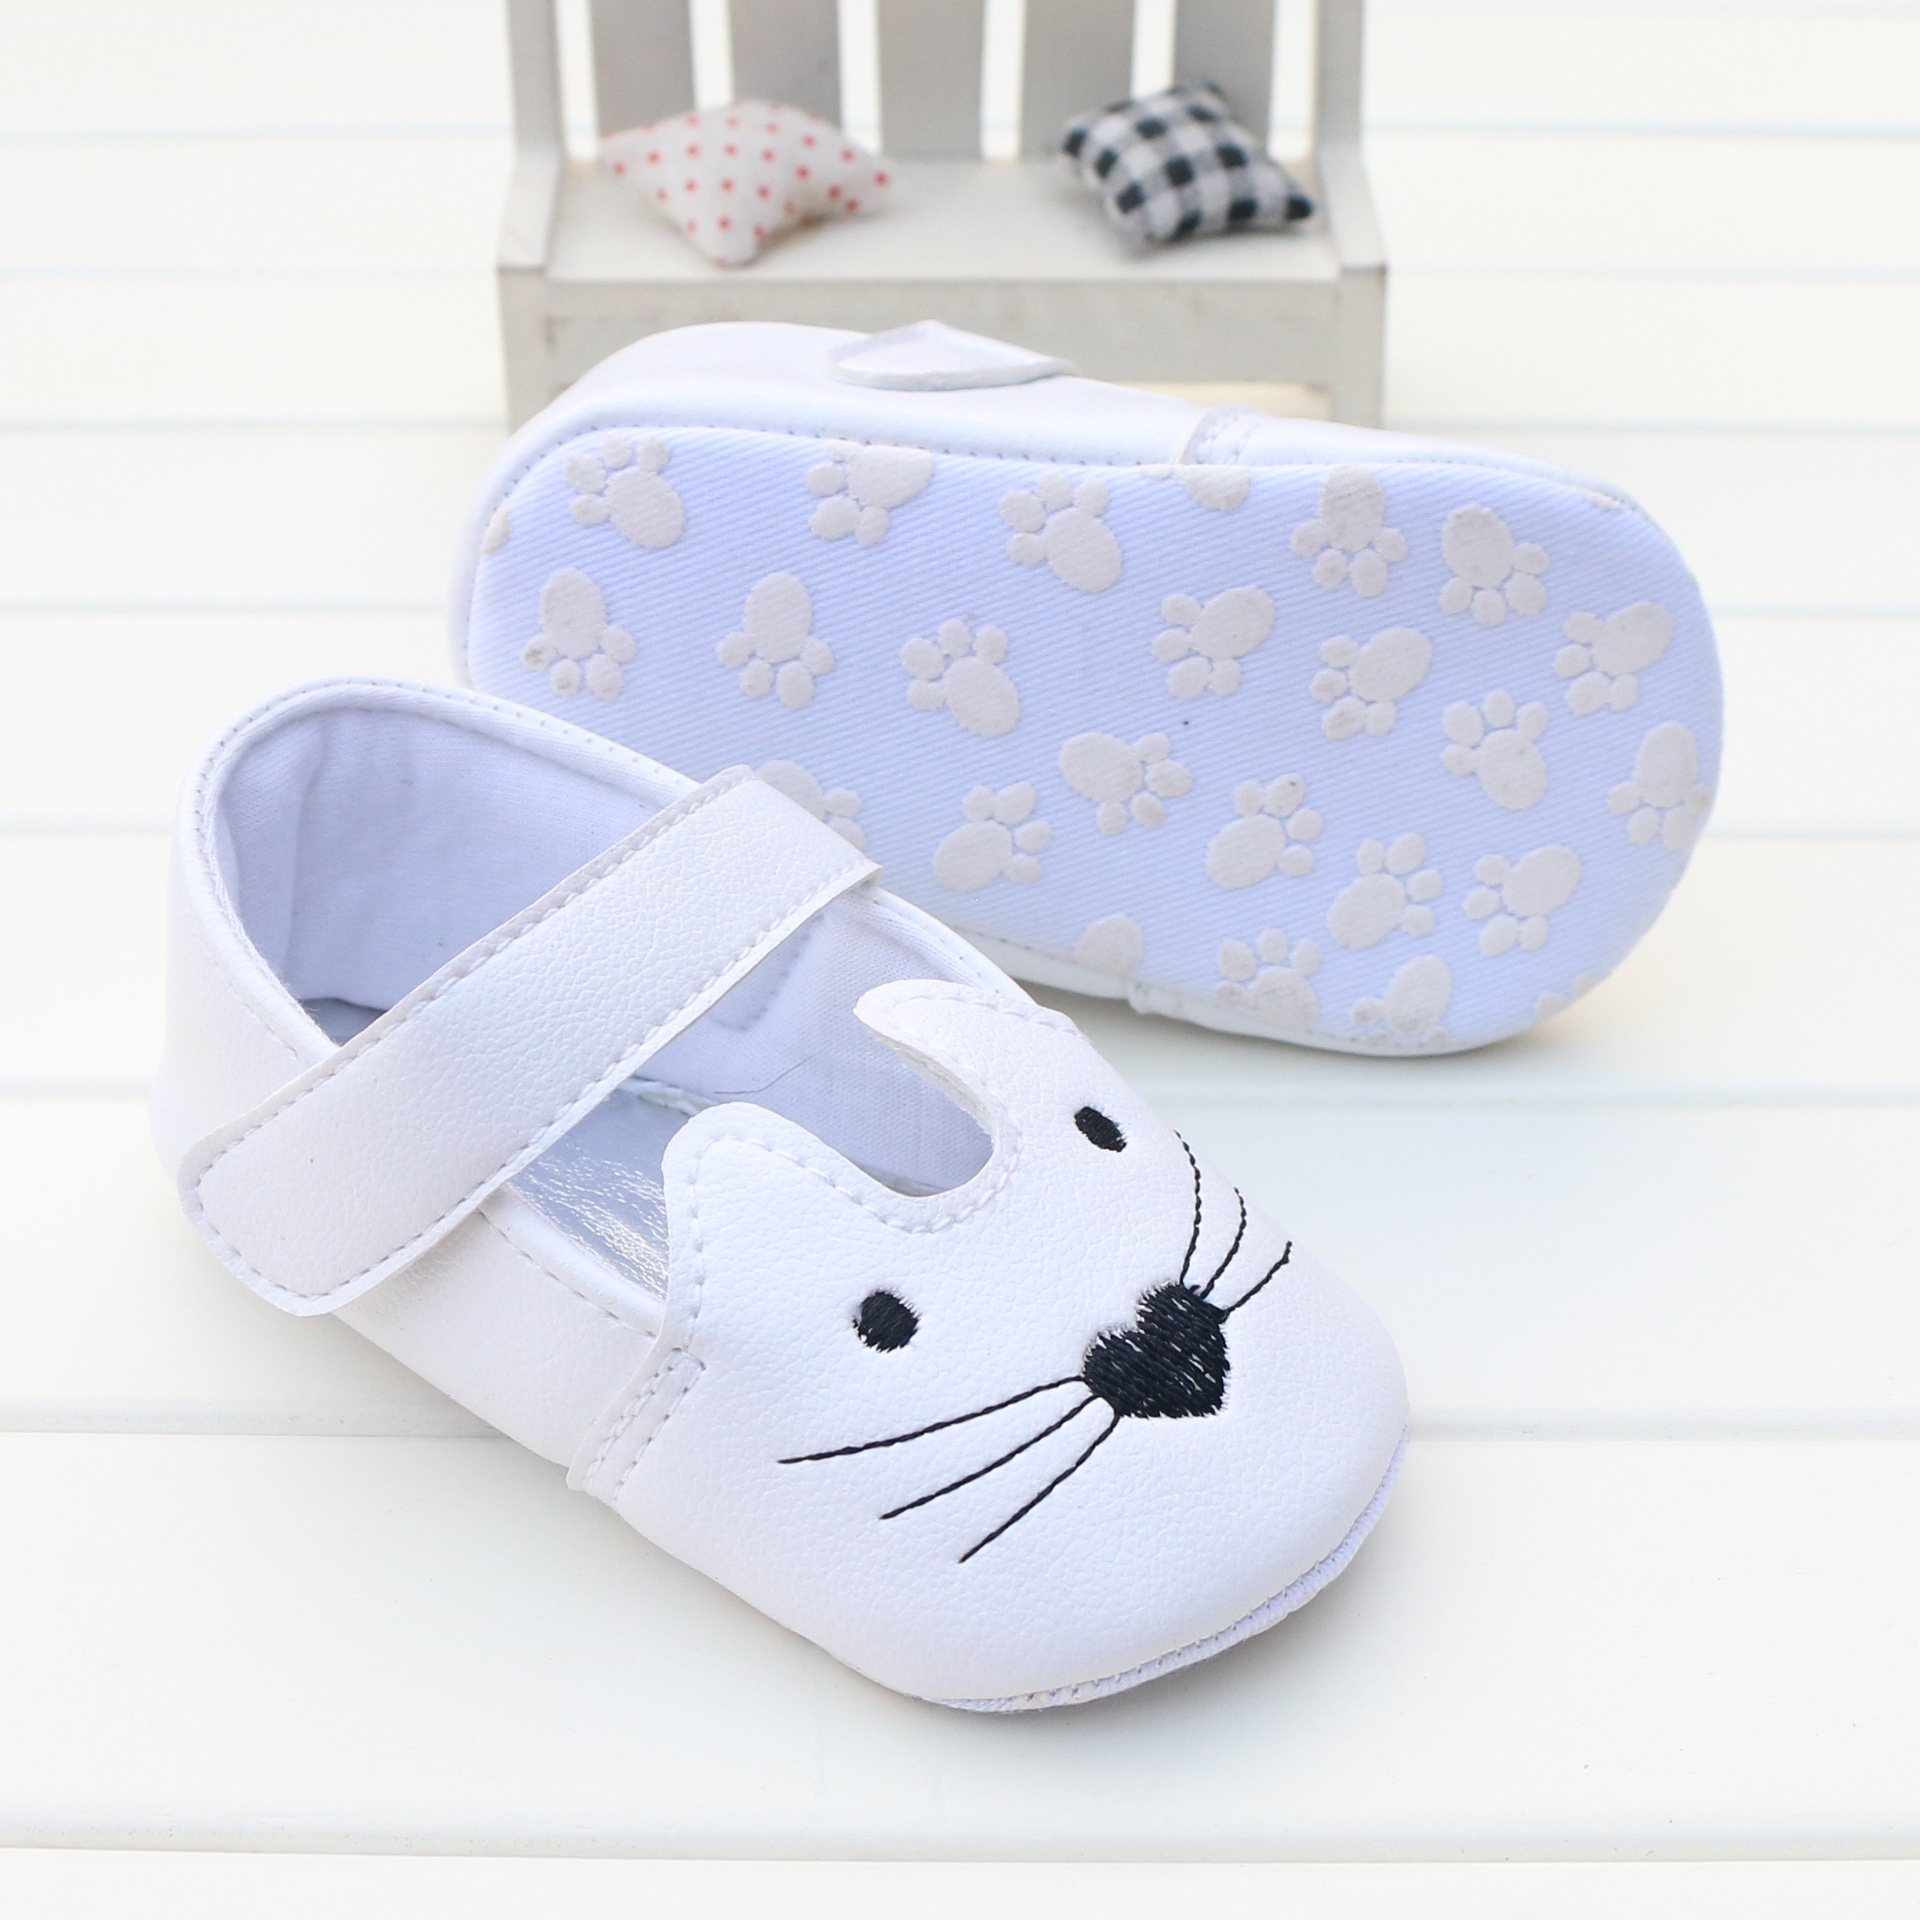 Baby First Walkers Baby Shoes Cartoon Pu Soft Bottom Non-slip Toddler Shoes for Baby Girls